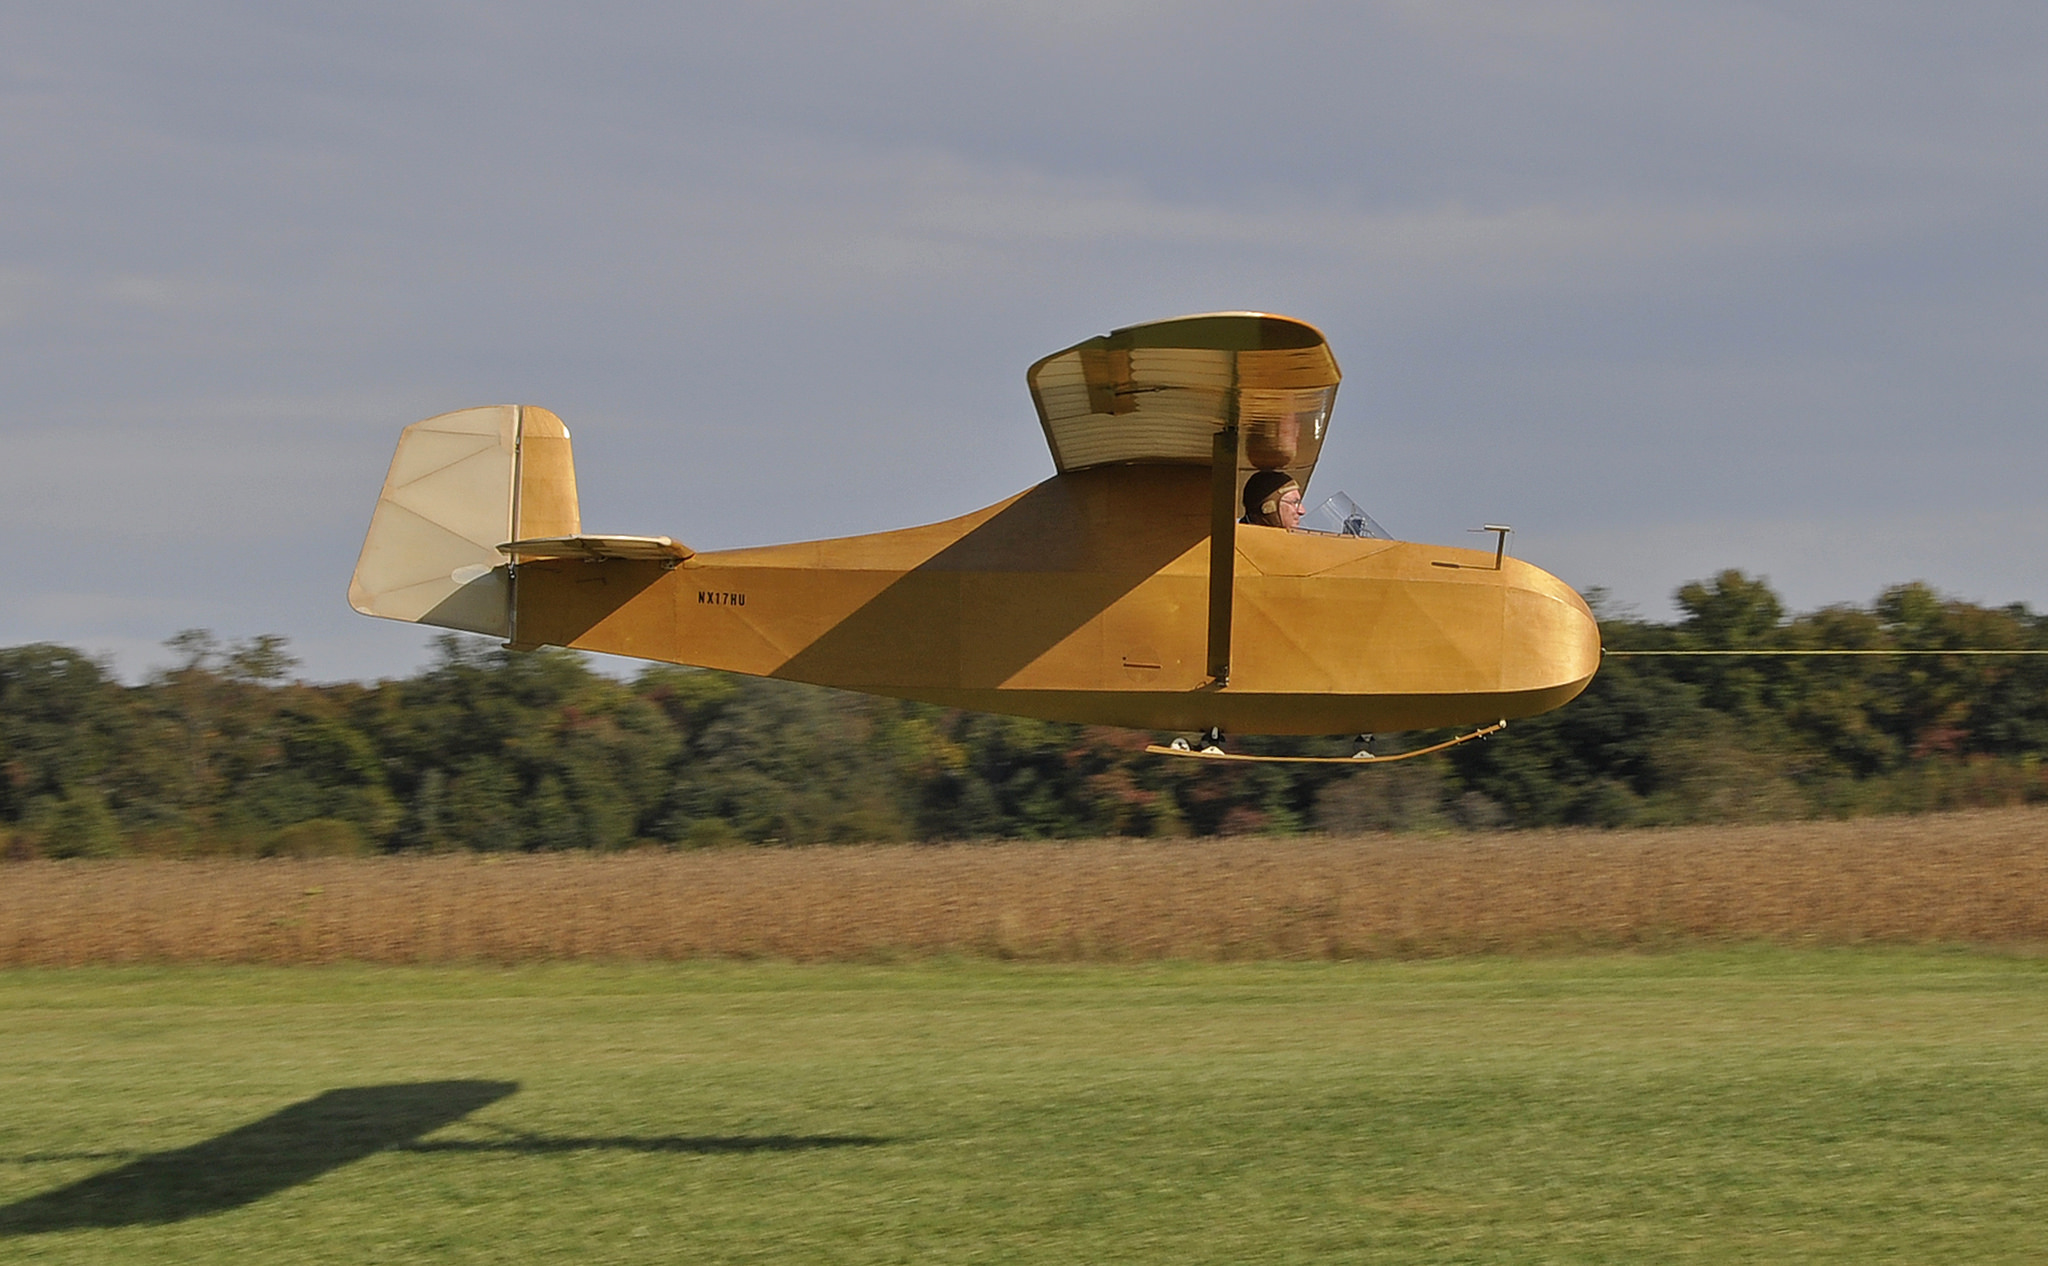 Vintage Sailplane Rendezvous at Massey Aerodrome